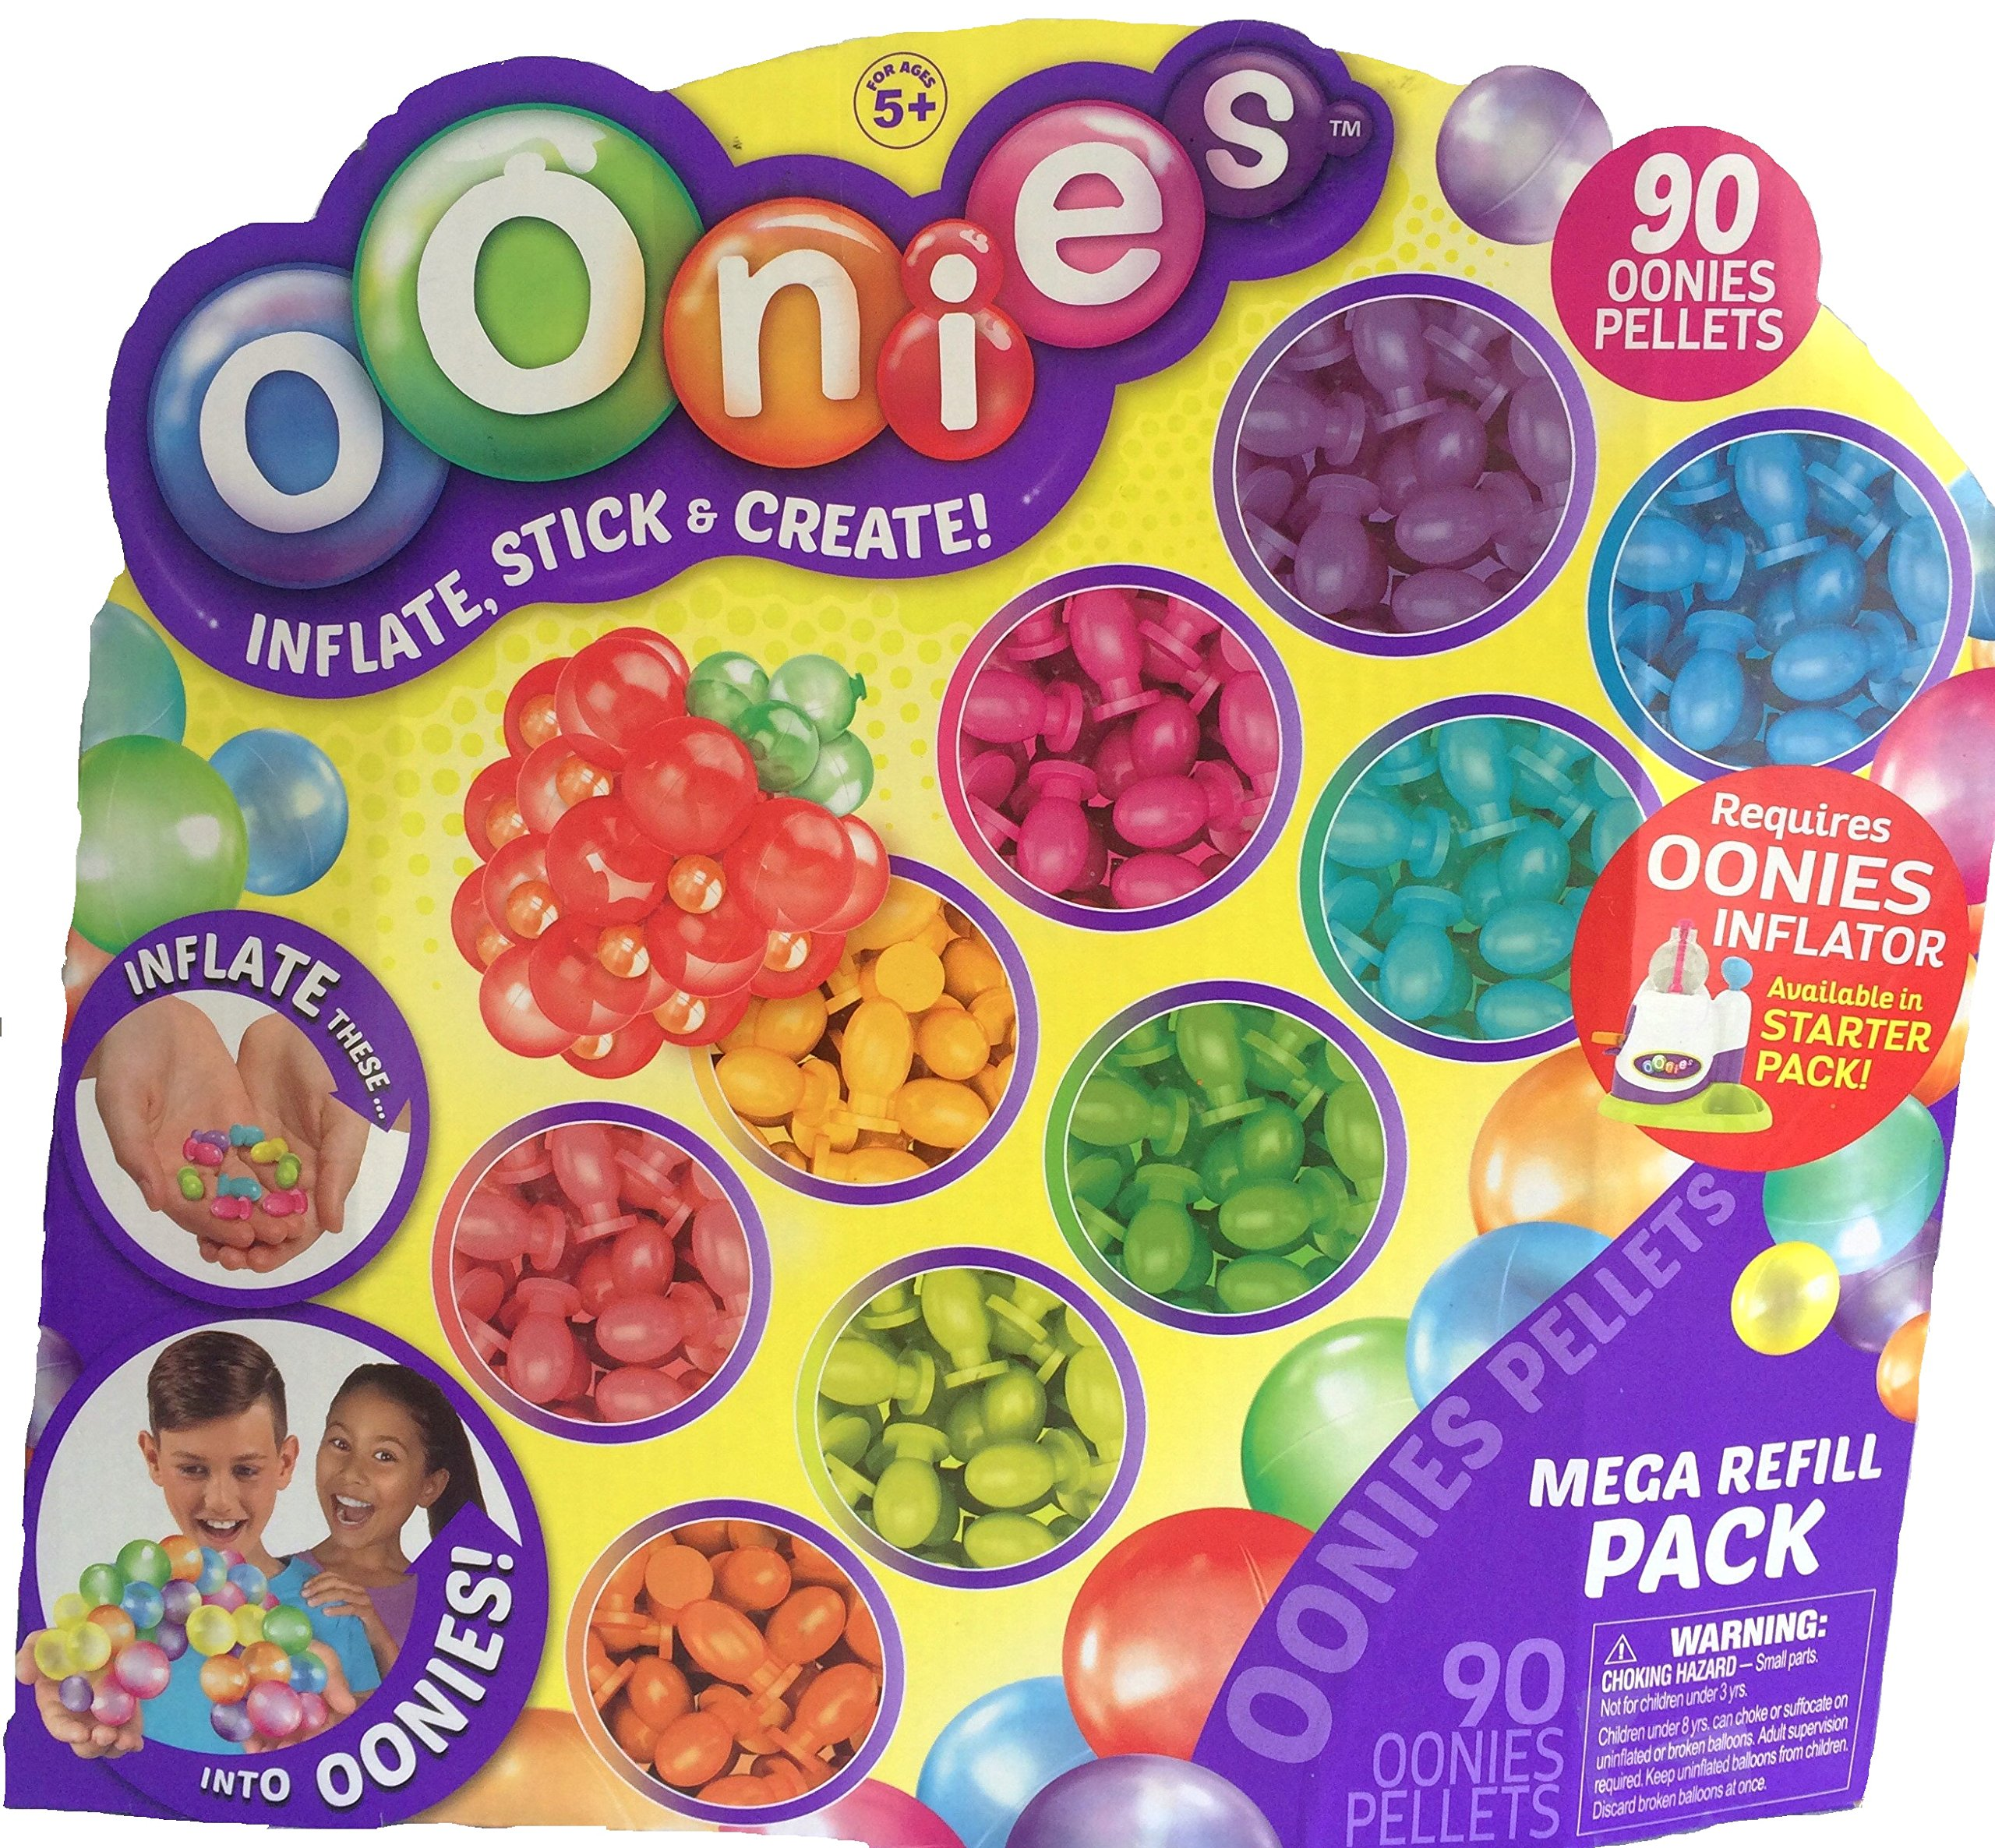 Oonies 5 Piece Toy Bundle Includes Starter Pack with Inflator Tool, Oonies MEGA Refill Multicolor Pack, Oonies Additional Theme Pack, 30 Puffy Sticker Adhesive Eyes & Santa Clings by Mixed (Image #3)